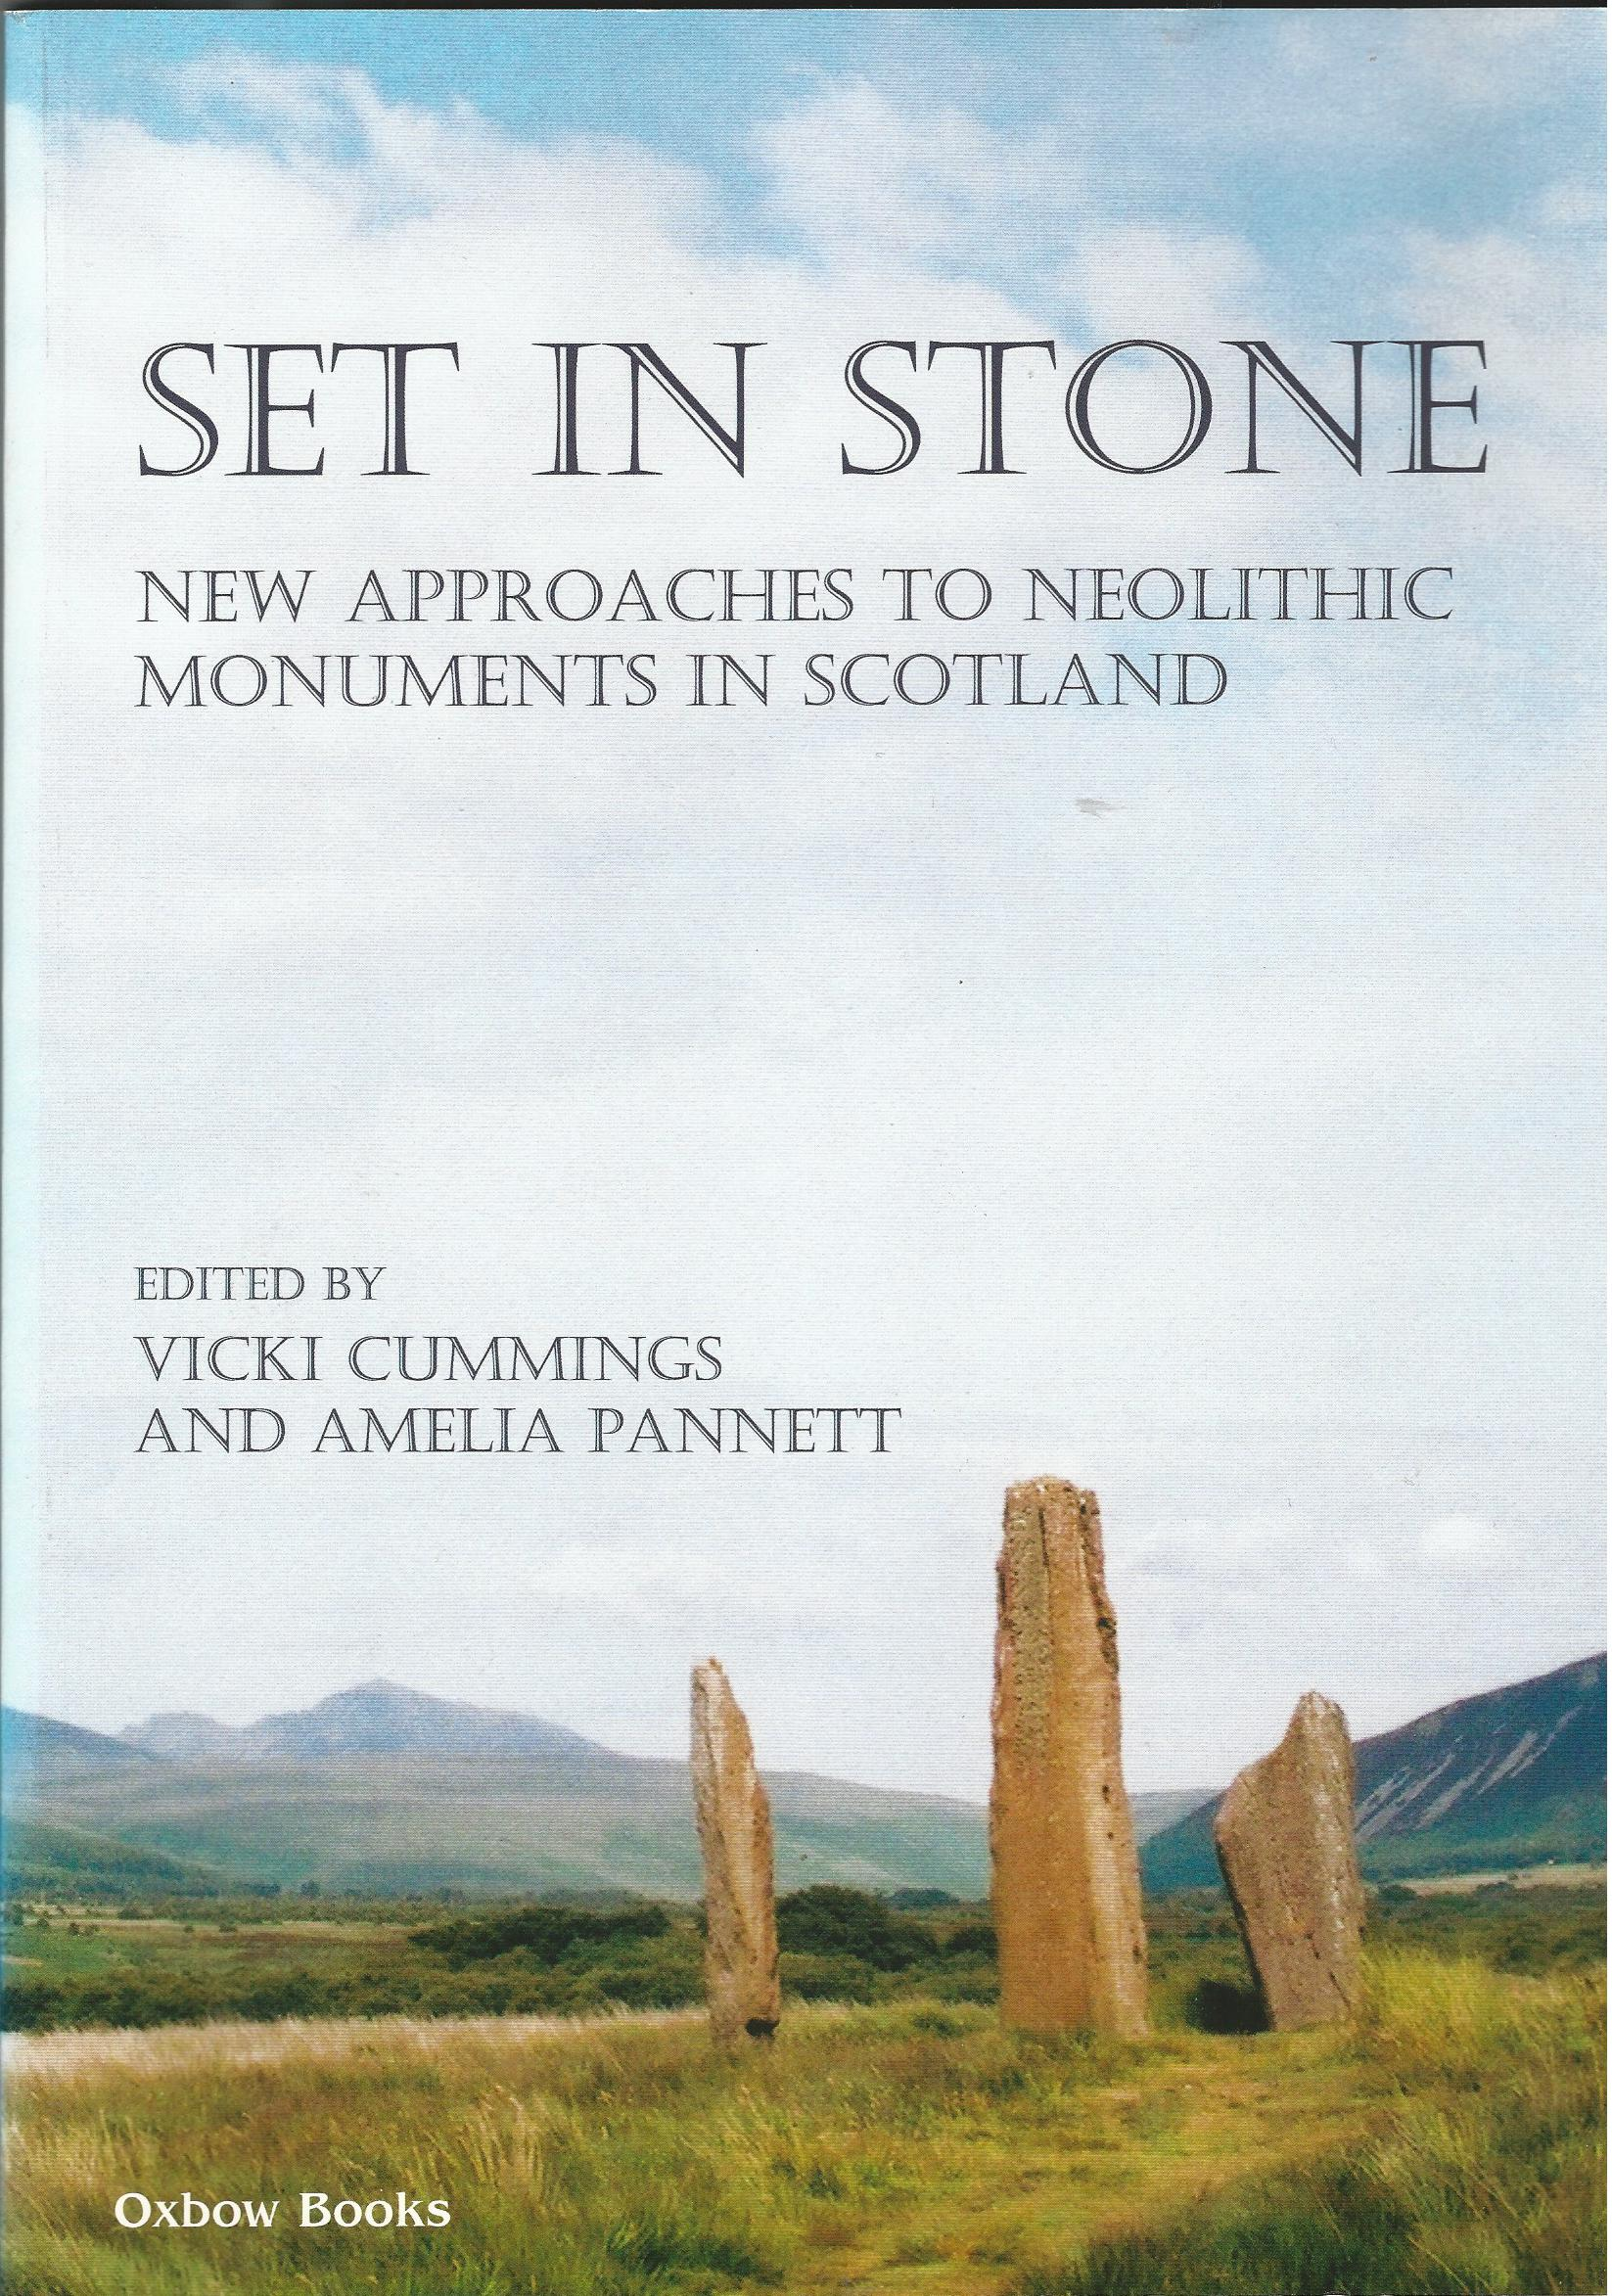 Image for Set in stone: New approaches to Neolithic monuments in Scotland